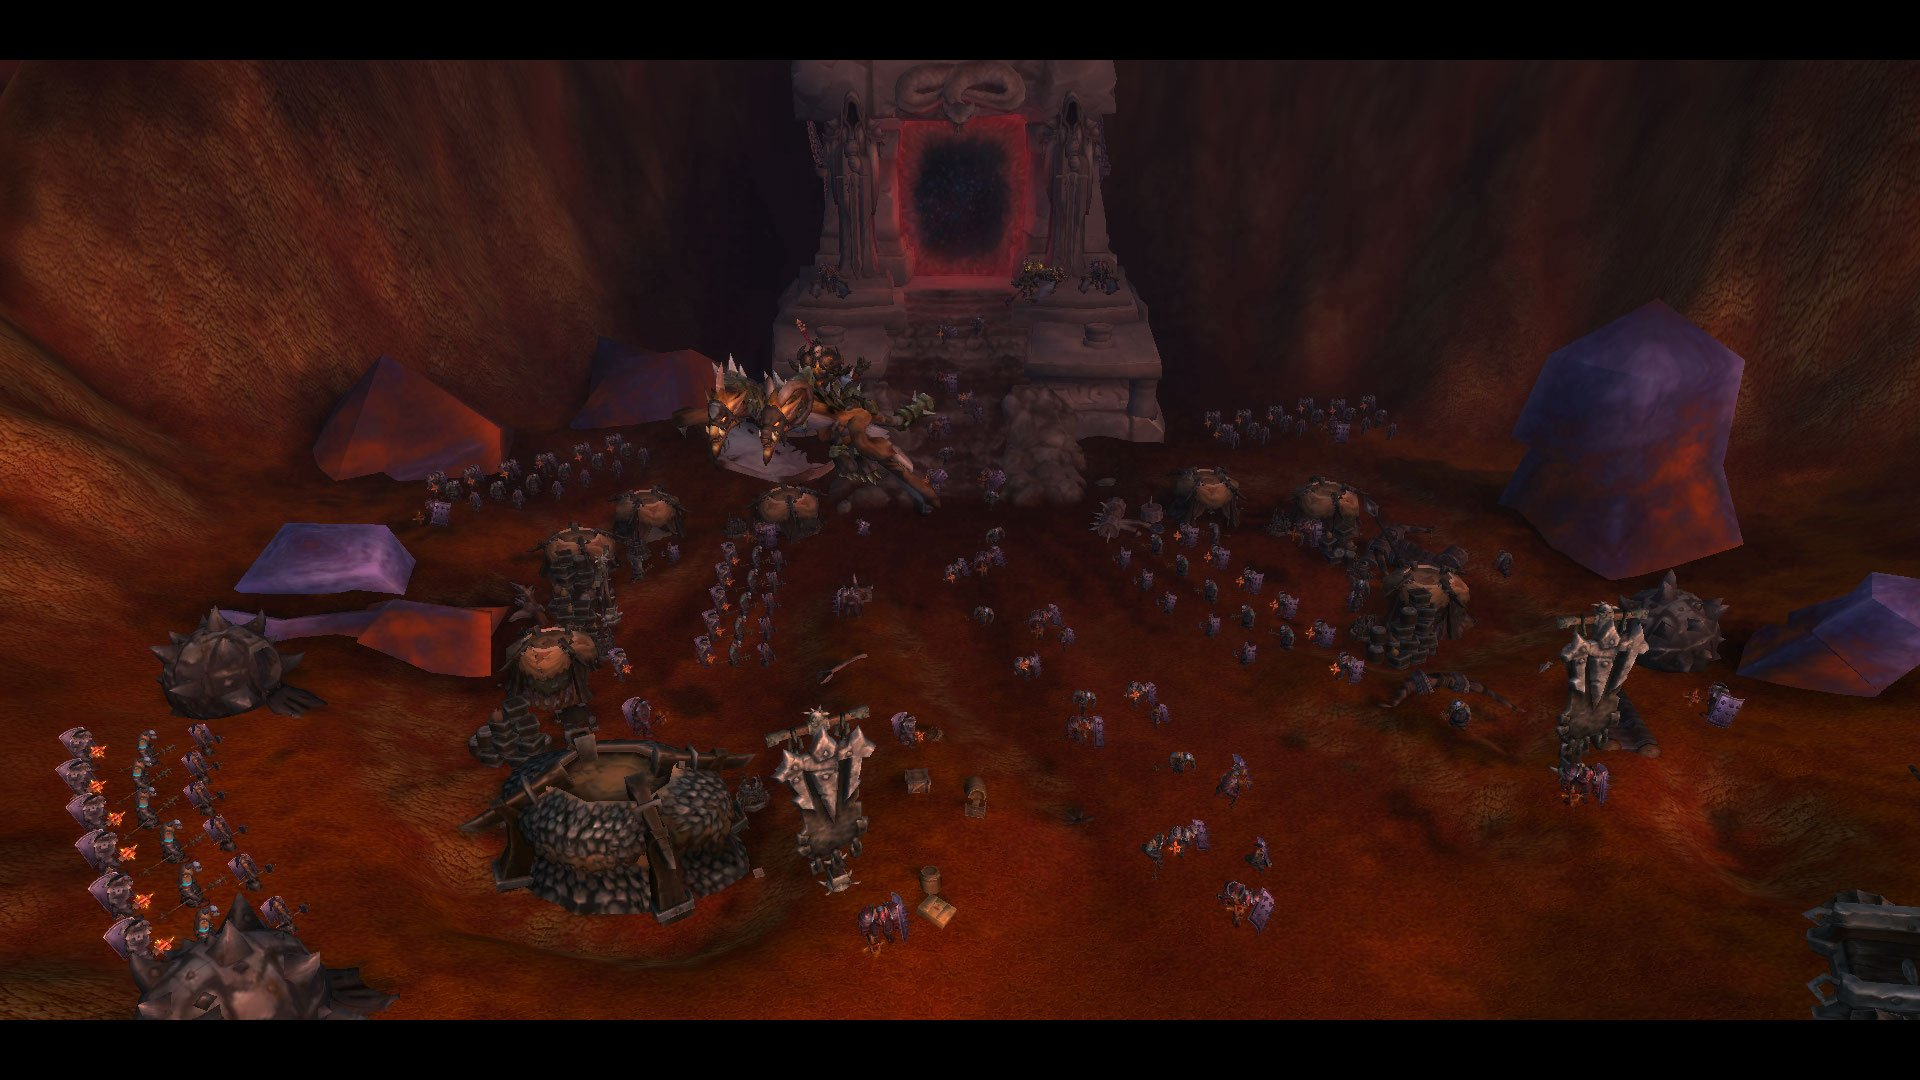 Скриншоты WoW: Warlords of Draenor. Pre-patch. - Изображение 7